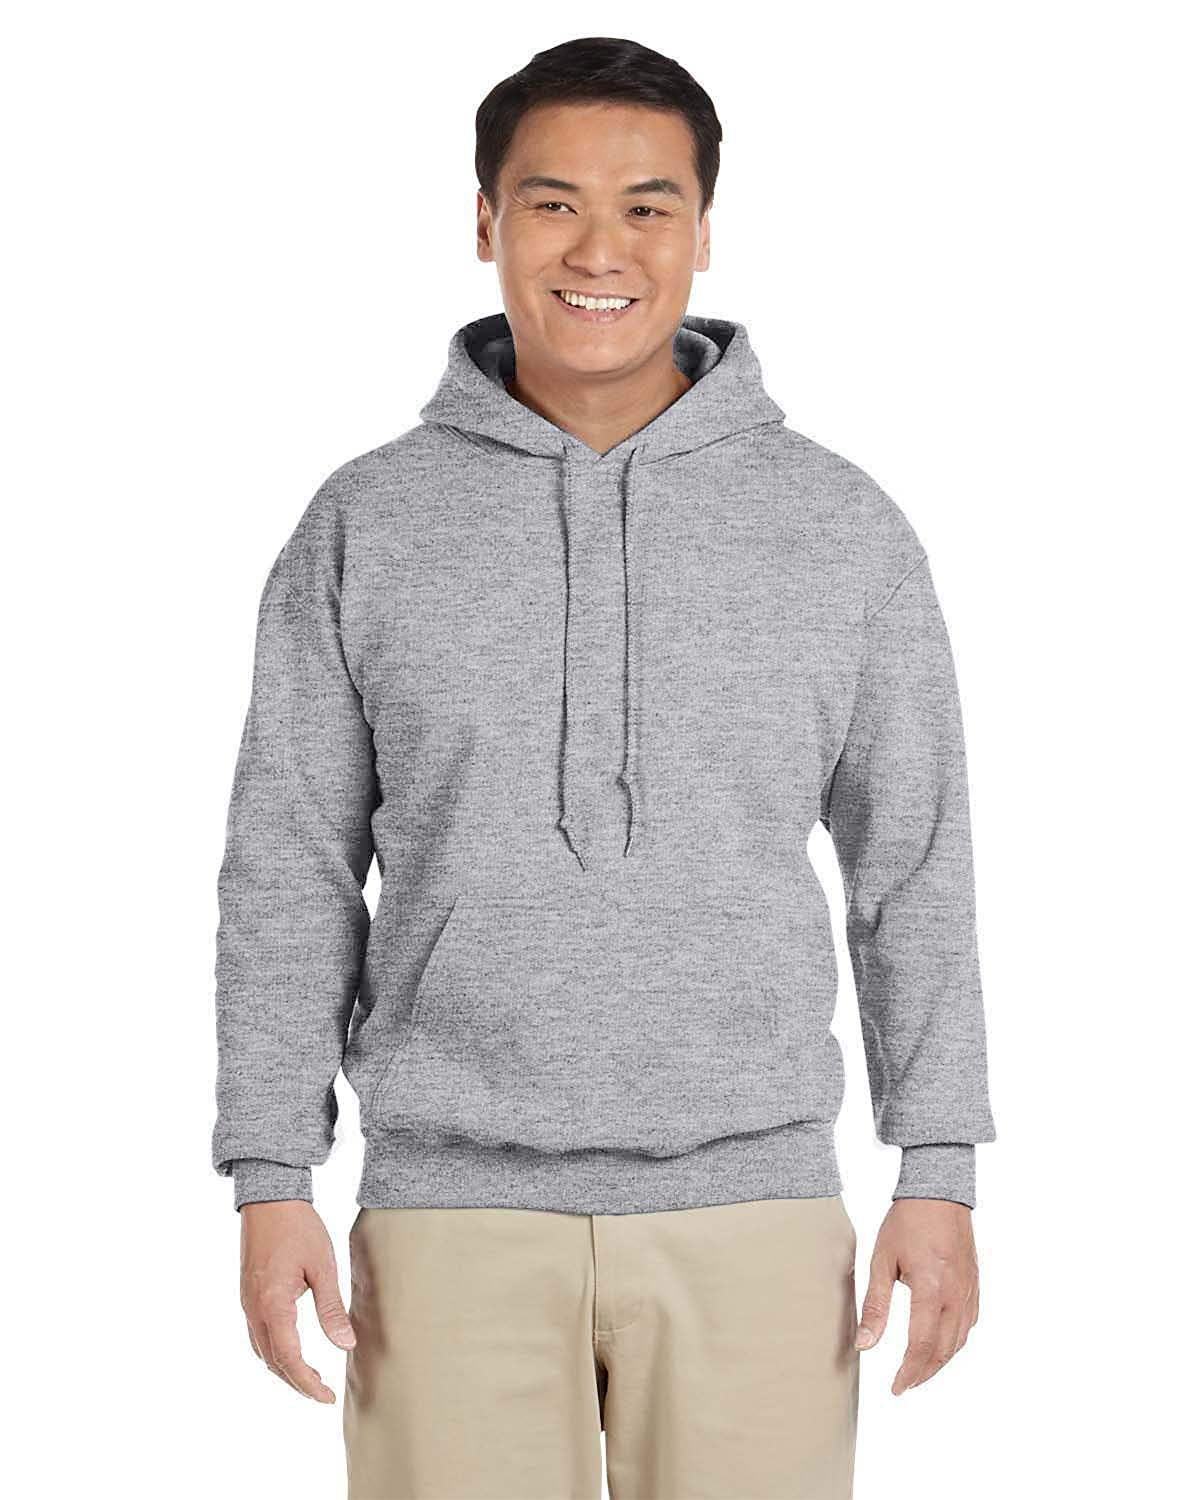 Gildan Adult Preshrunk Hooded Sweatshirt (Pack of 2) G18500